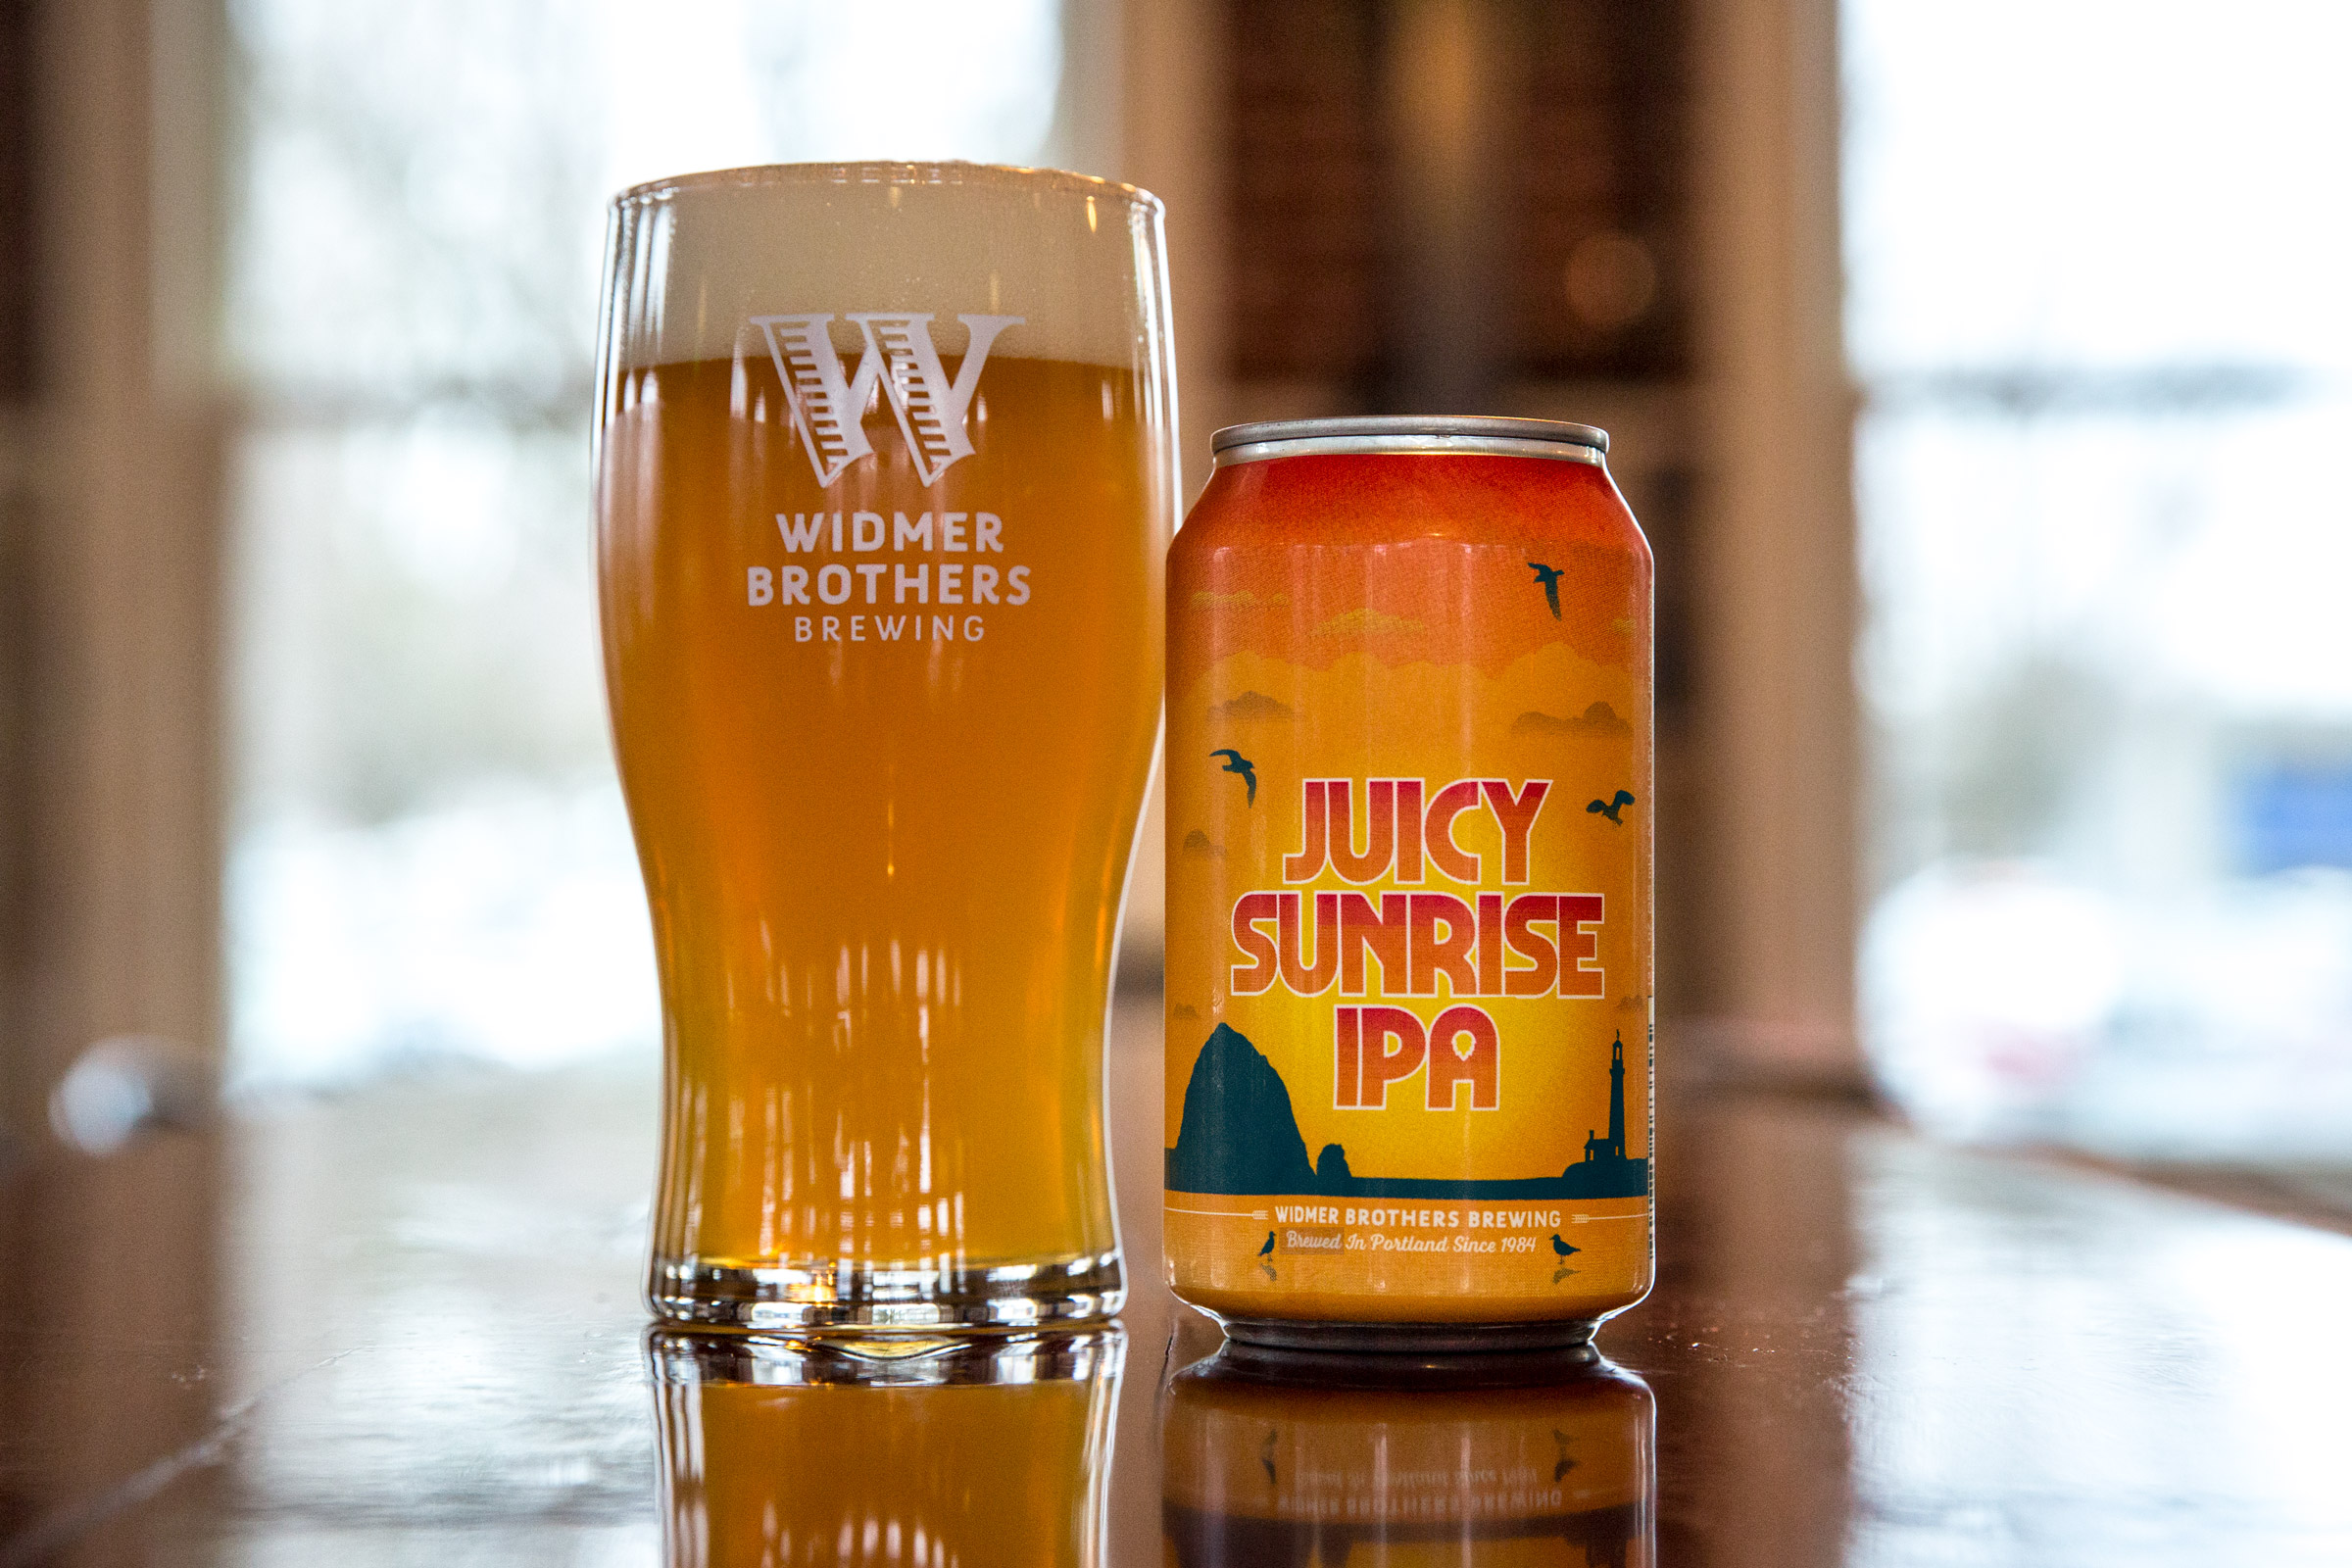 image of Juicy Sunrise IPA courtesy of Widmer Brothers Brewing